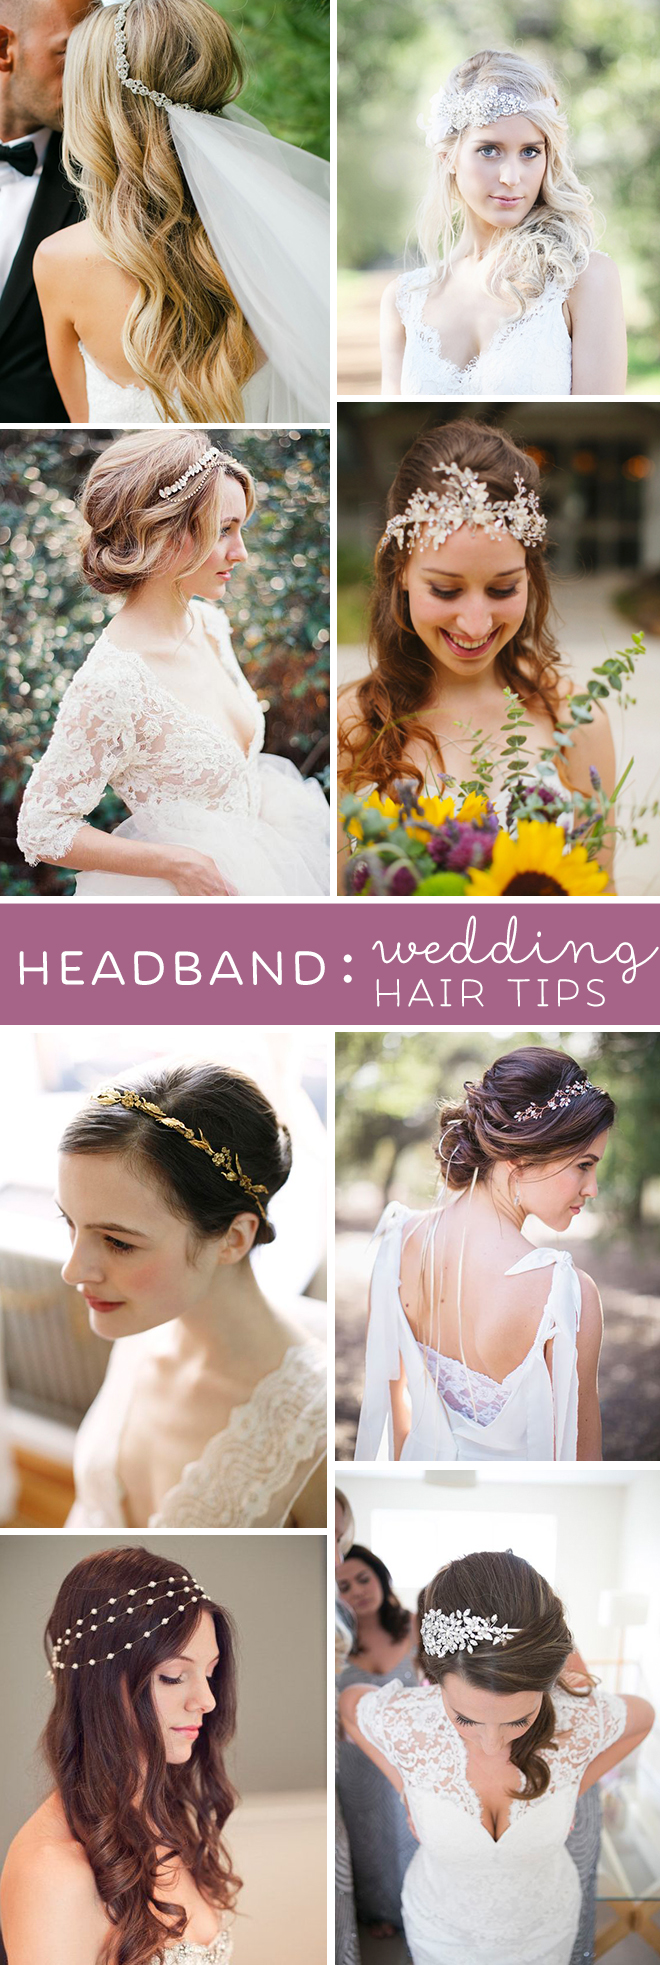 wedding hair tips headbands wedding hair pieces Awesome tips from a wedding hair professional about wearing a headband or hair piece for your